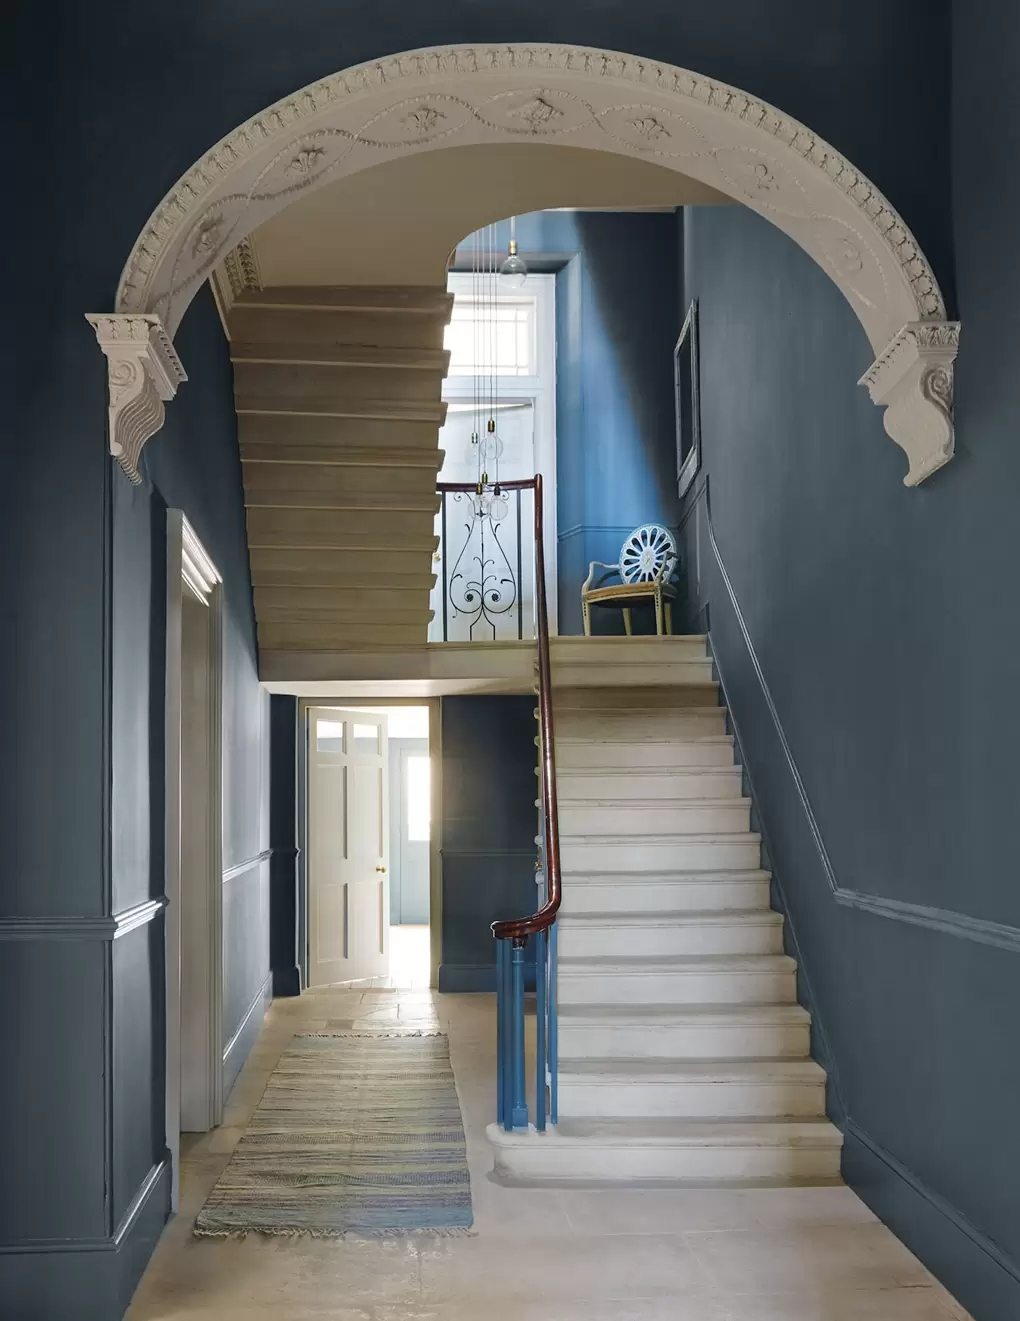 Staircase Ideas House Garden | Staircases For Small Cottages | Open | Small Footprint | Skinny | Corner | Wooden